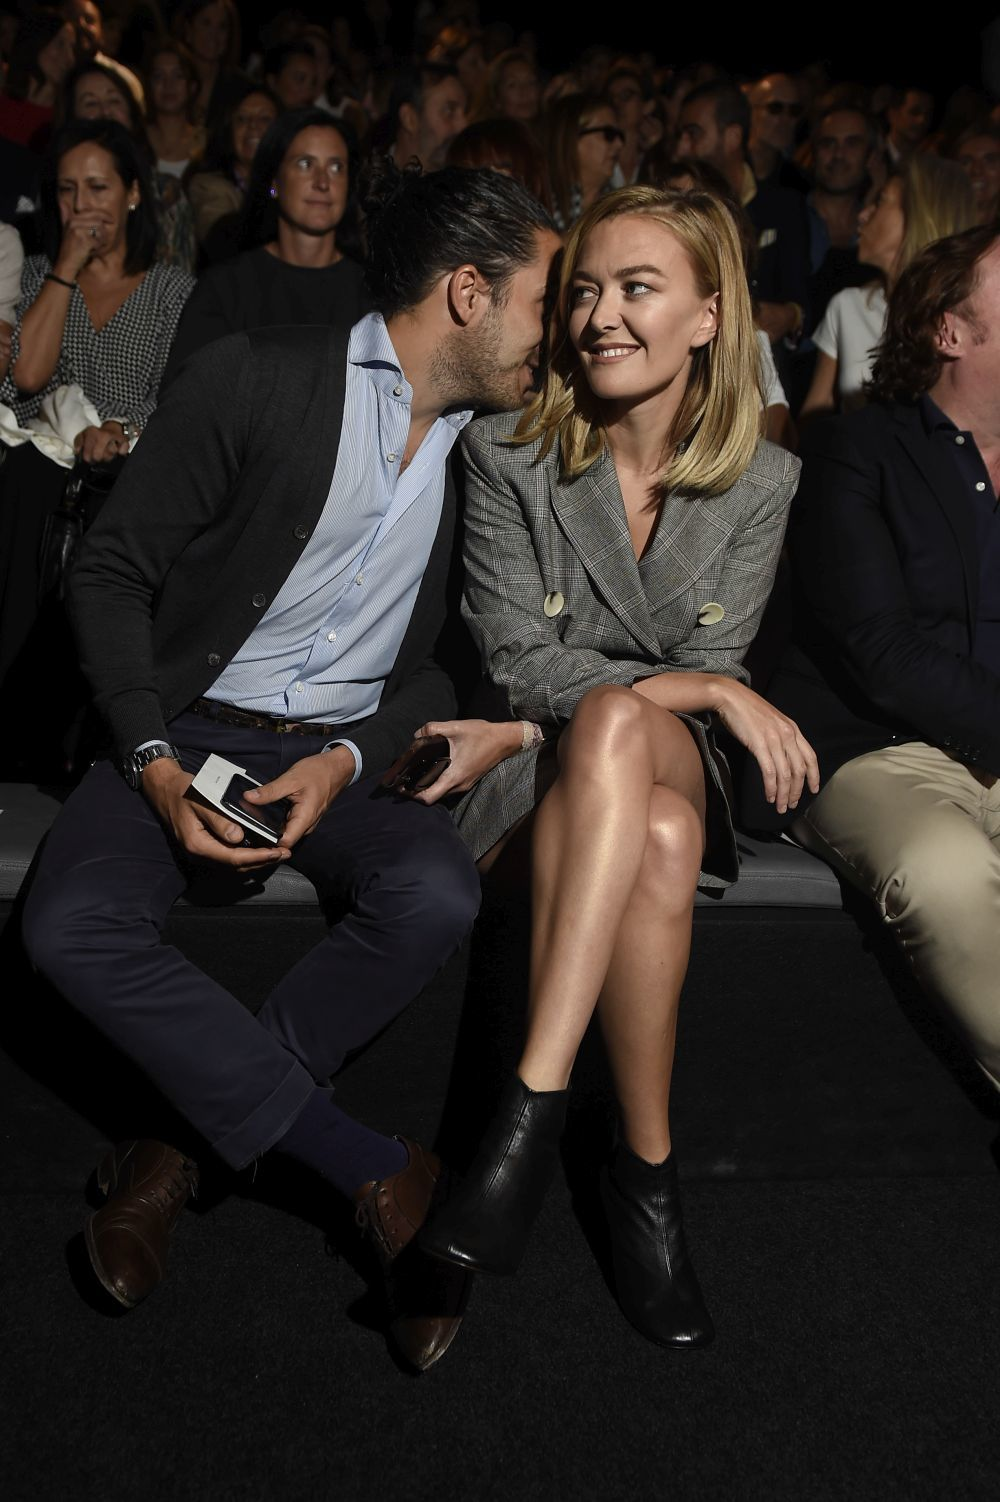 Vestida de Zara en el front row de la Madrid Fashion Week junto a su...